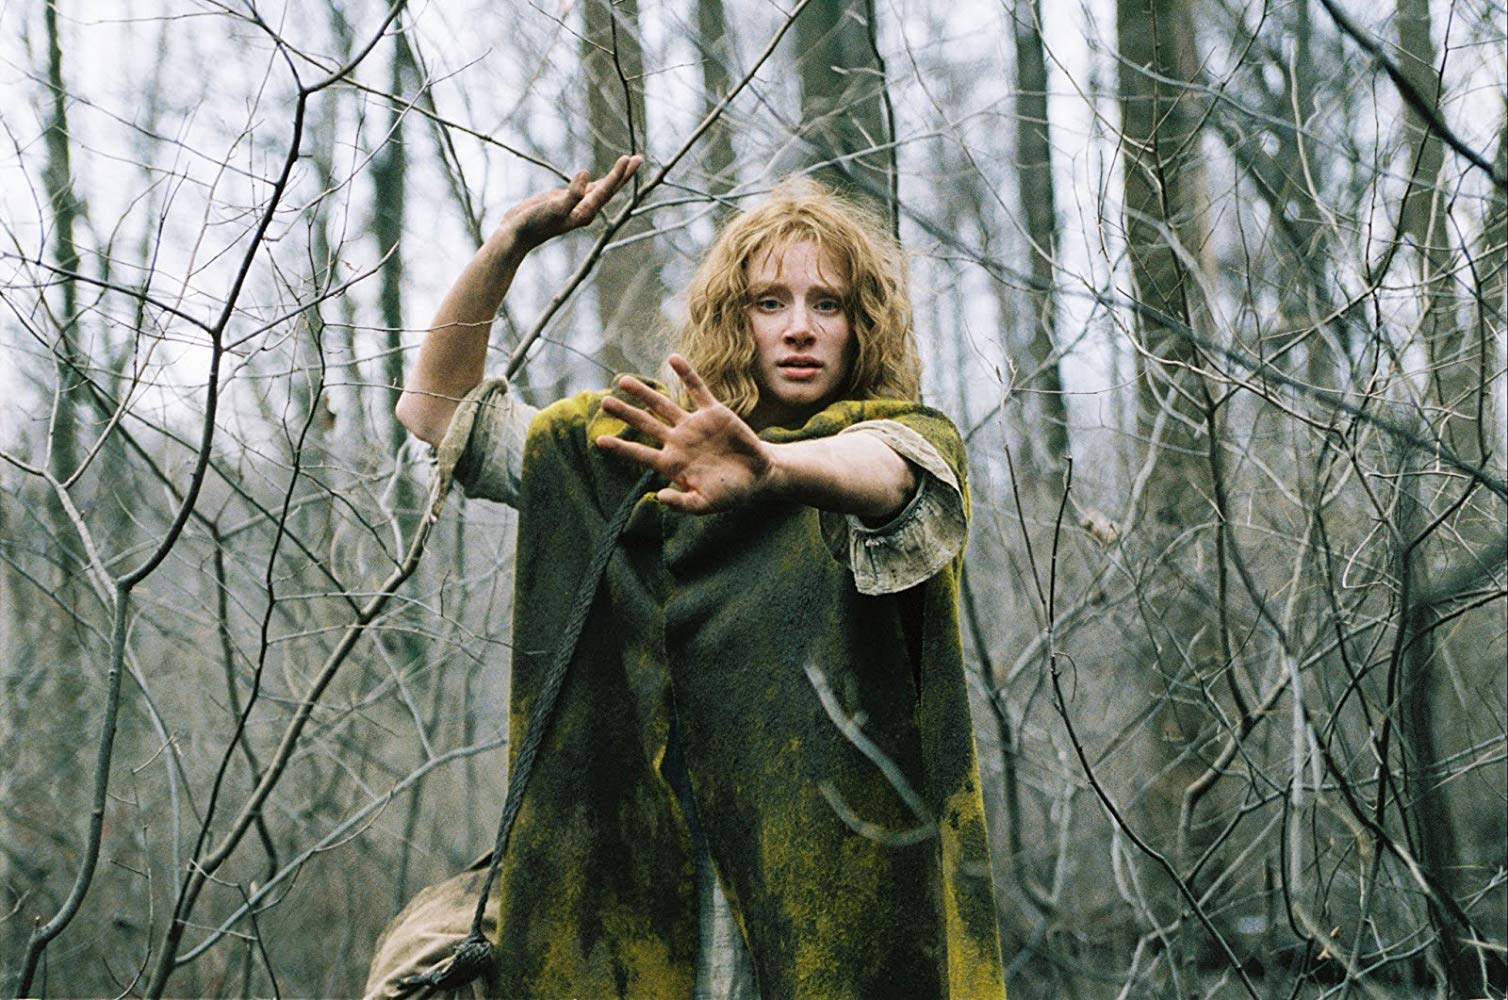 Blind Ivy Walker (Bryce Dallas Howard) makes her way through the woods in The Village (2004)